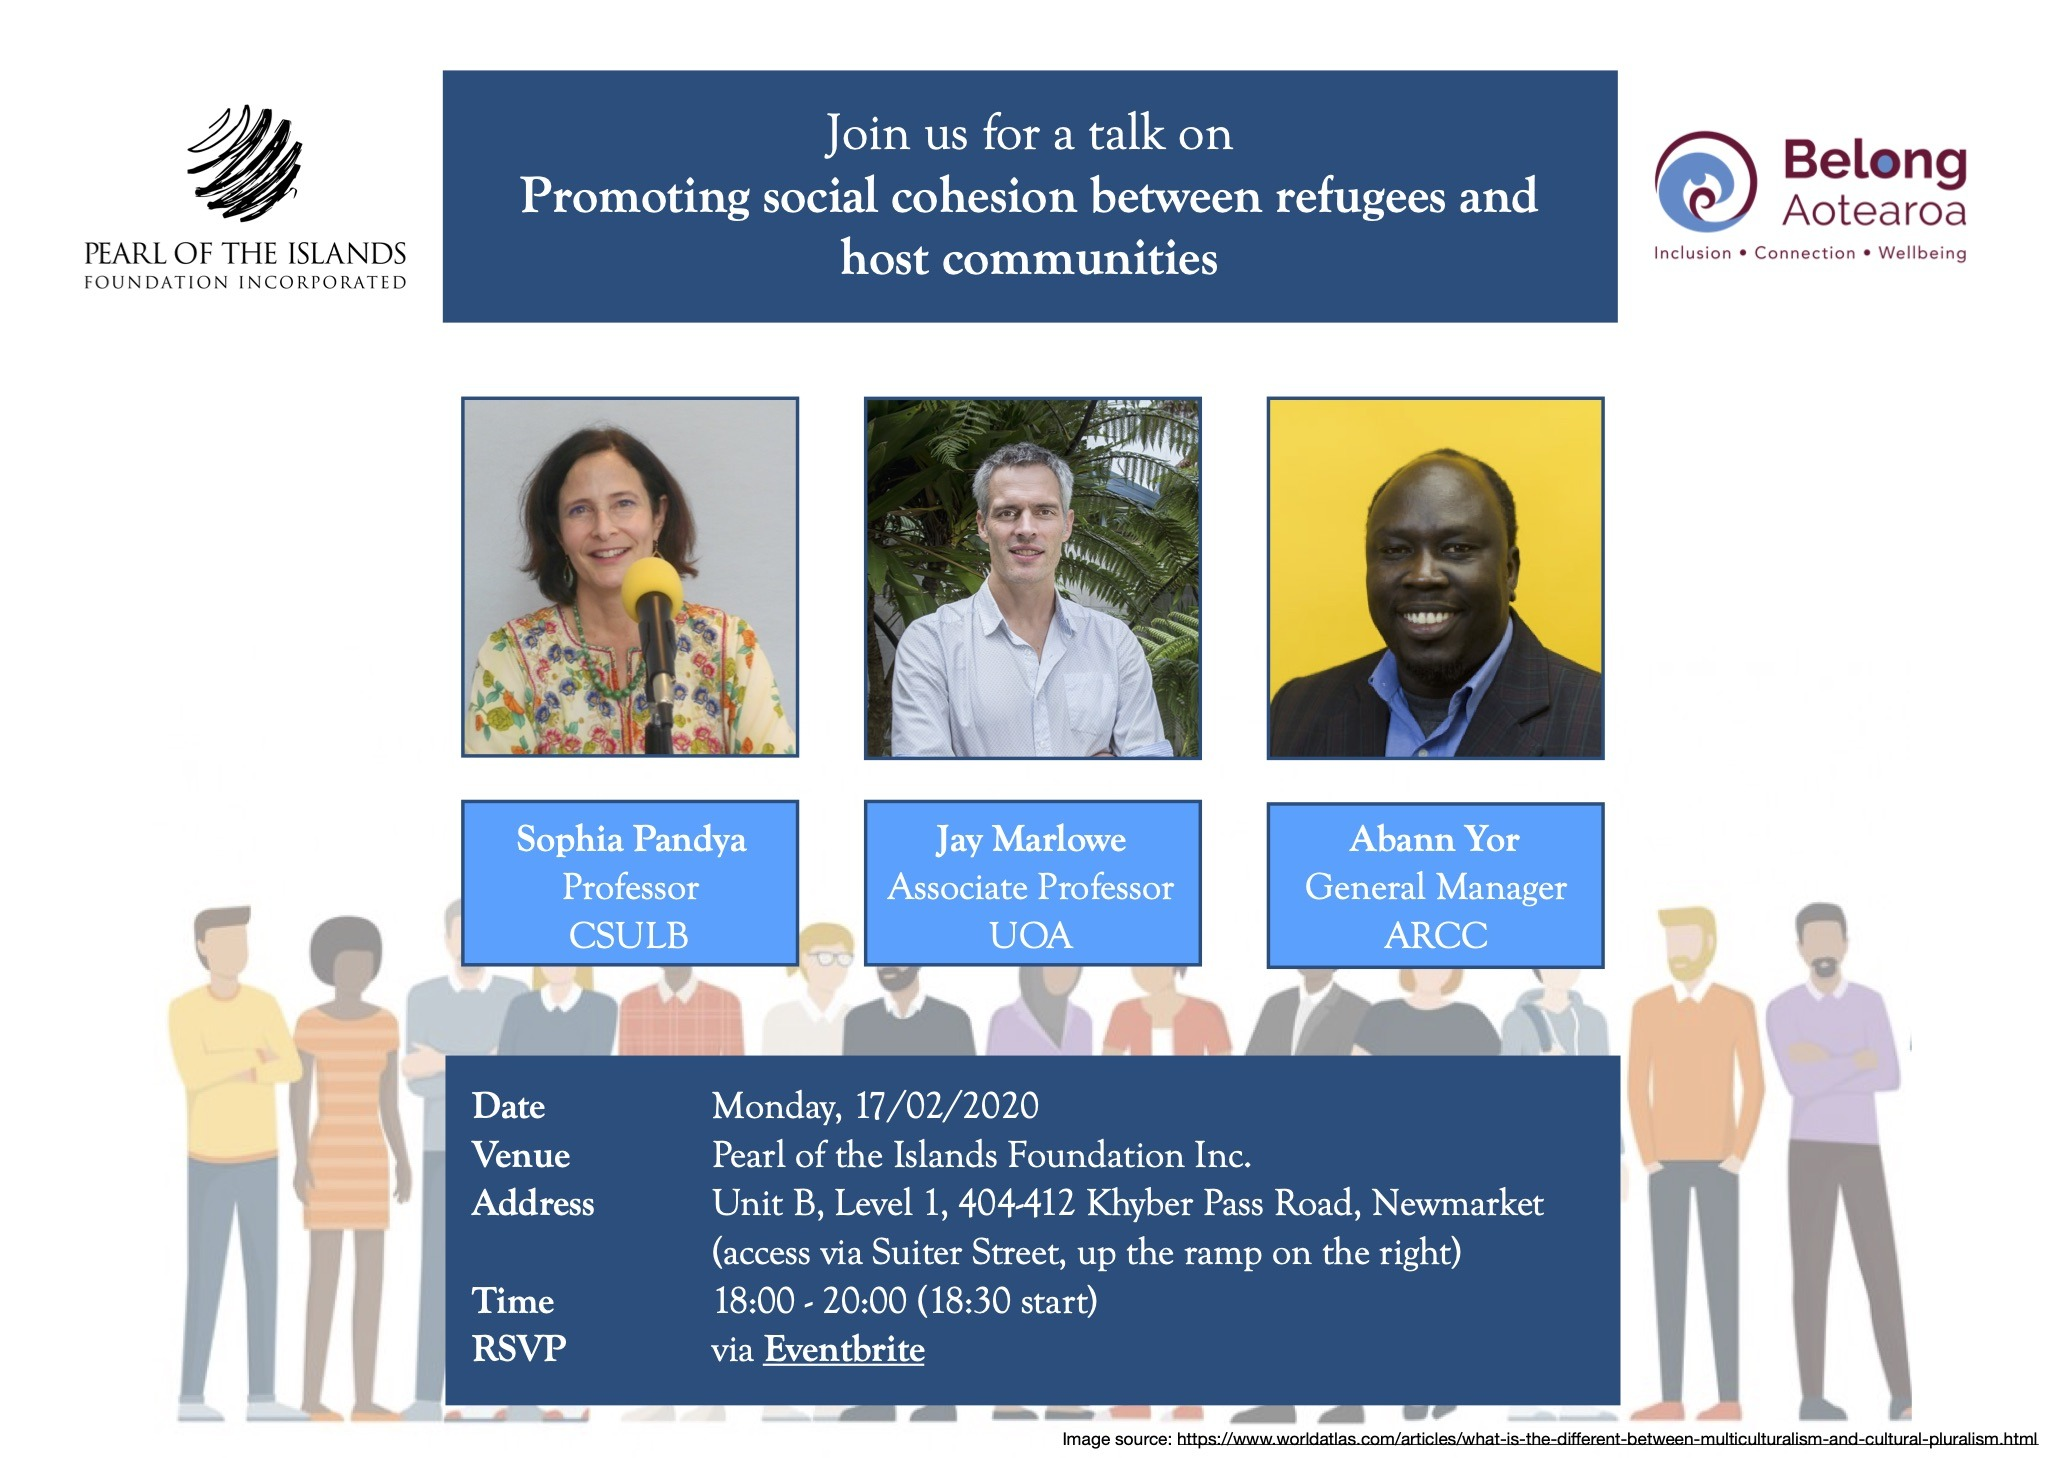 TALK: Join us for a talk on Promoting Social Cohesion between Refugees and Host Communities